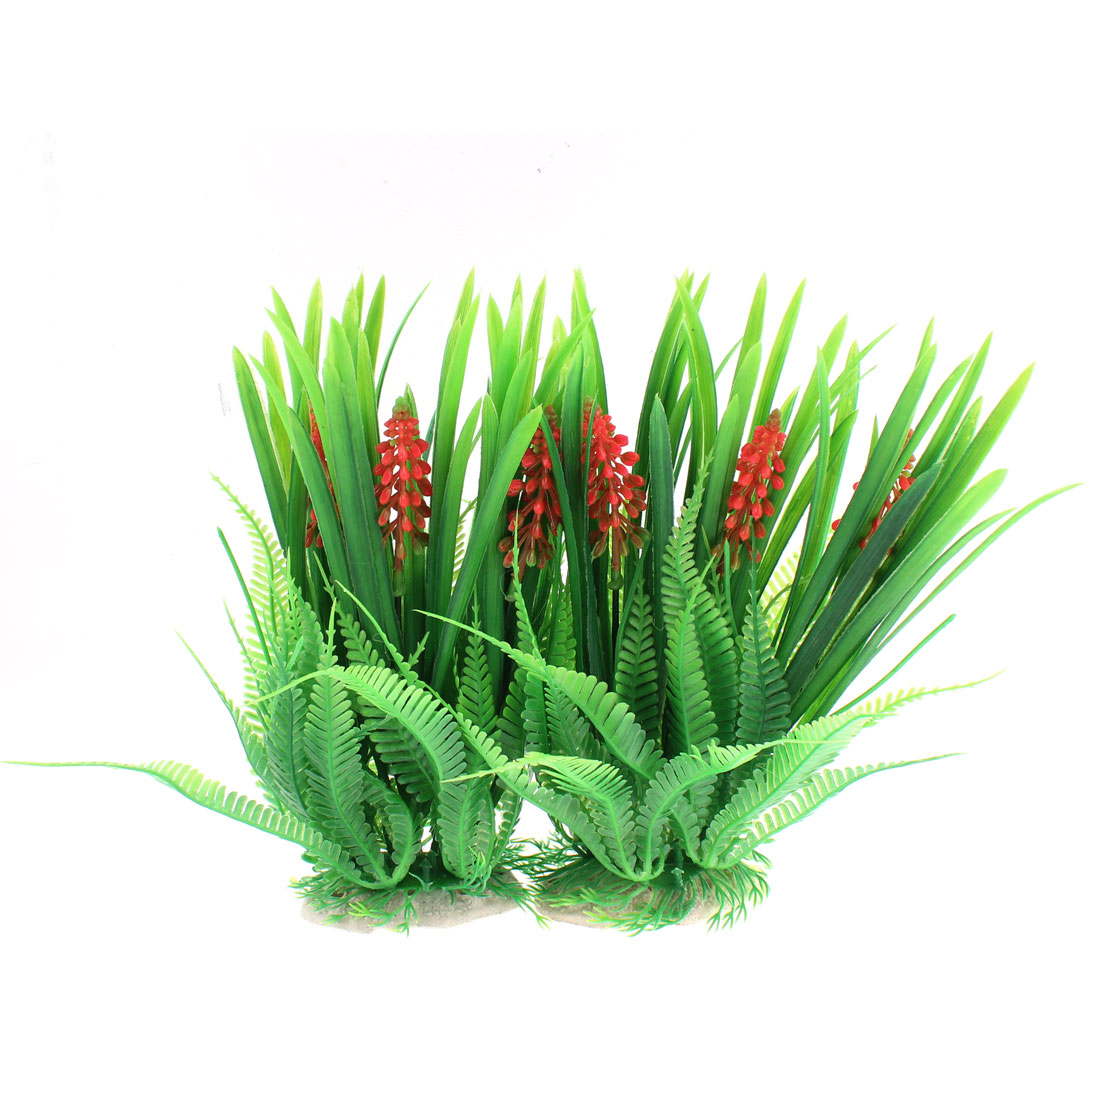 Aquarium Fish Tank Underwater Artificial Flower Spike Plant Decor 2PCS